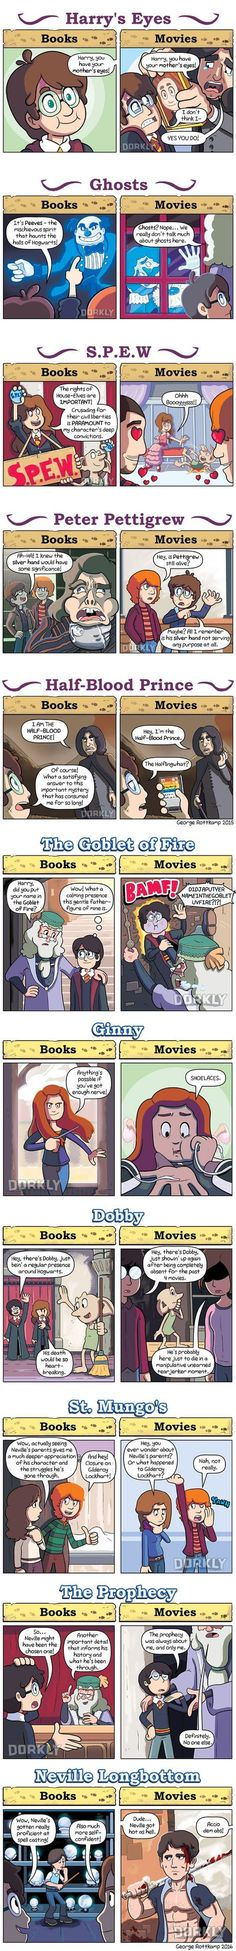 11 Ways Harry Potter Movies Are Different From The Books - Hogwarts Harry Potter Jokes, Harry Potter Fandom, Harry Potter World, Harry Potter Sirius, Harry Potter Comics, Always Harry Potter, Books Vs Movies, Desenhos Harry Potter, Harry Potter Quotes